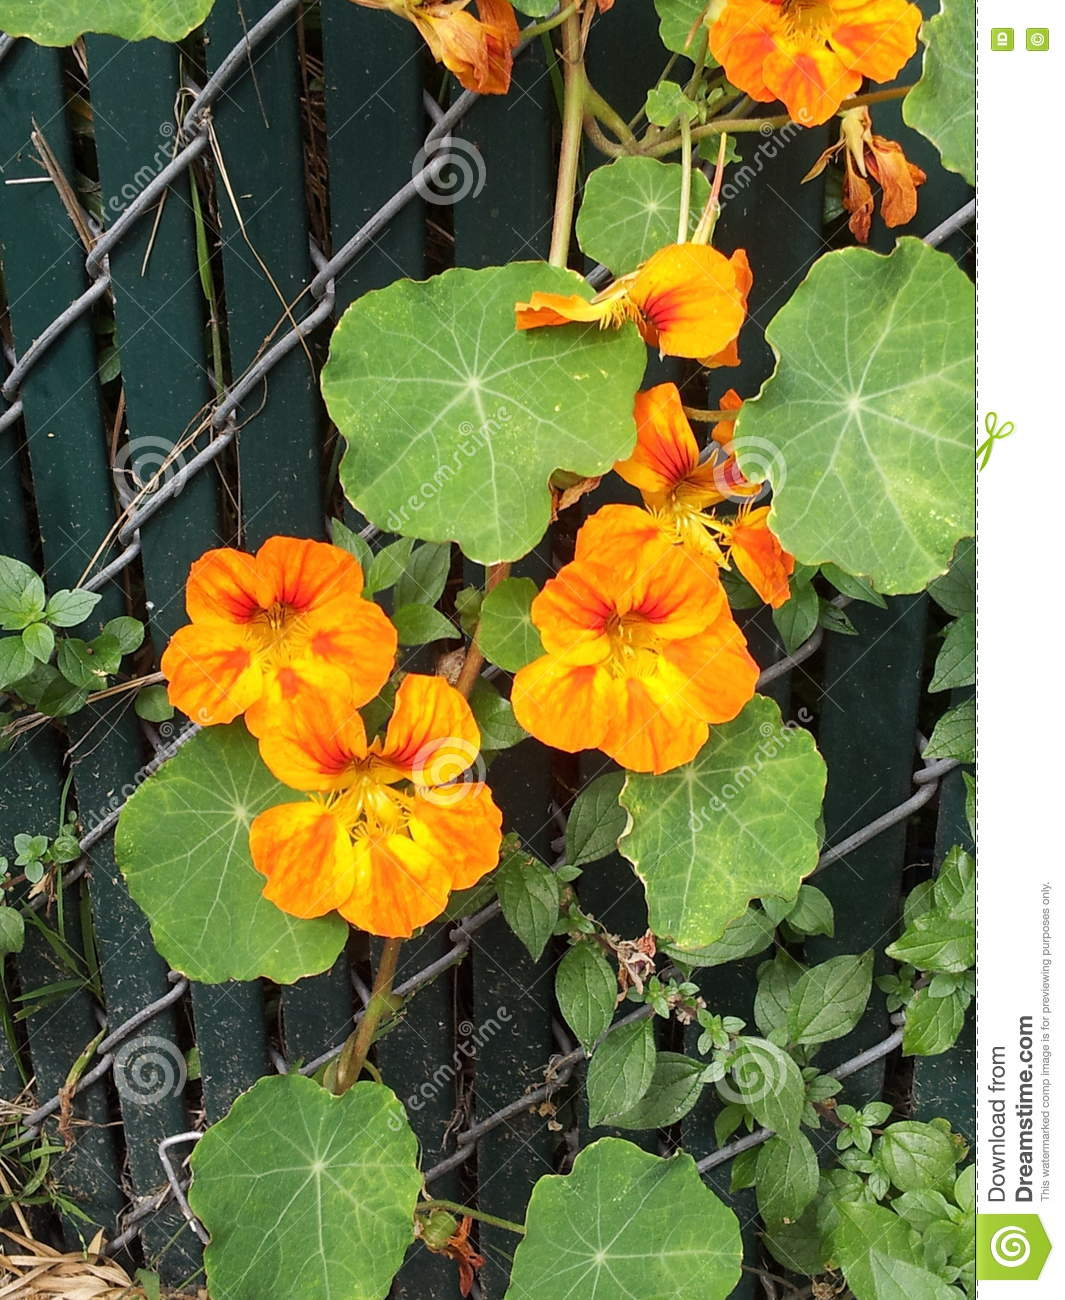 Orange flowers growing on a fence